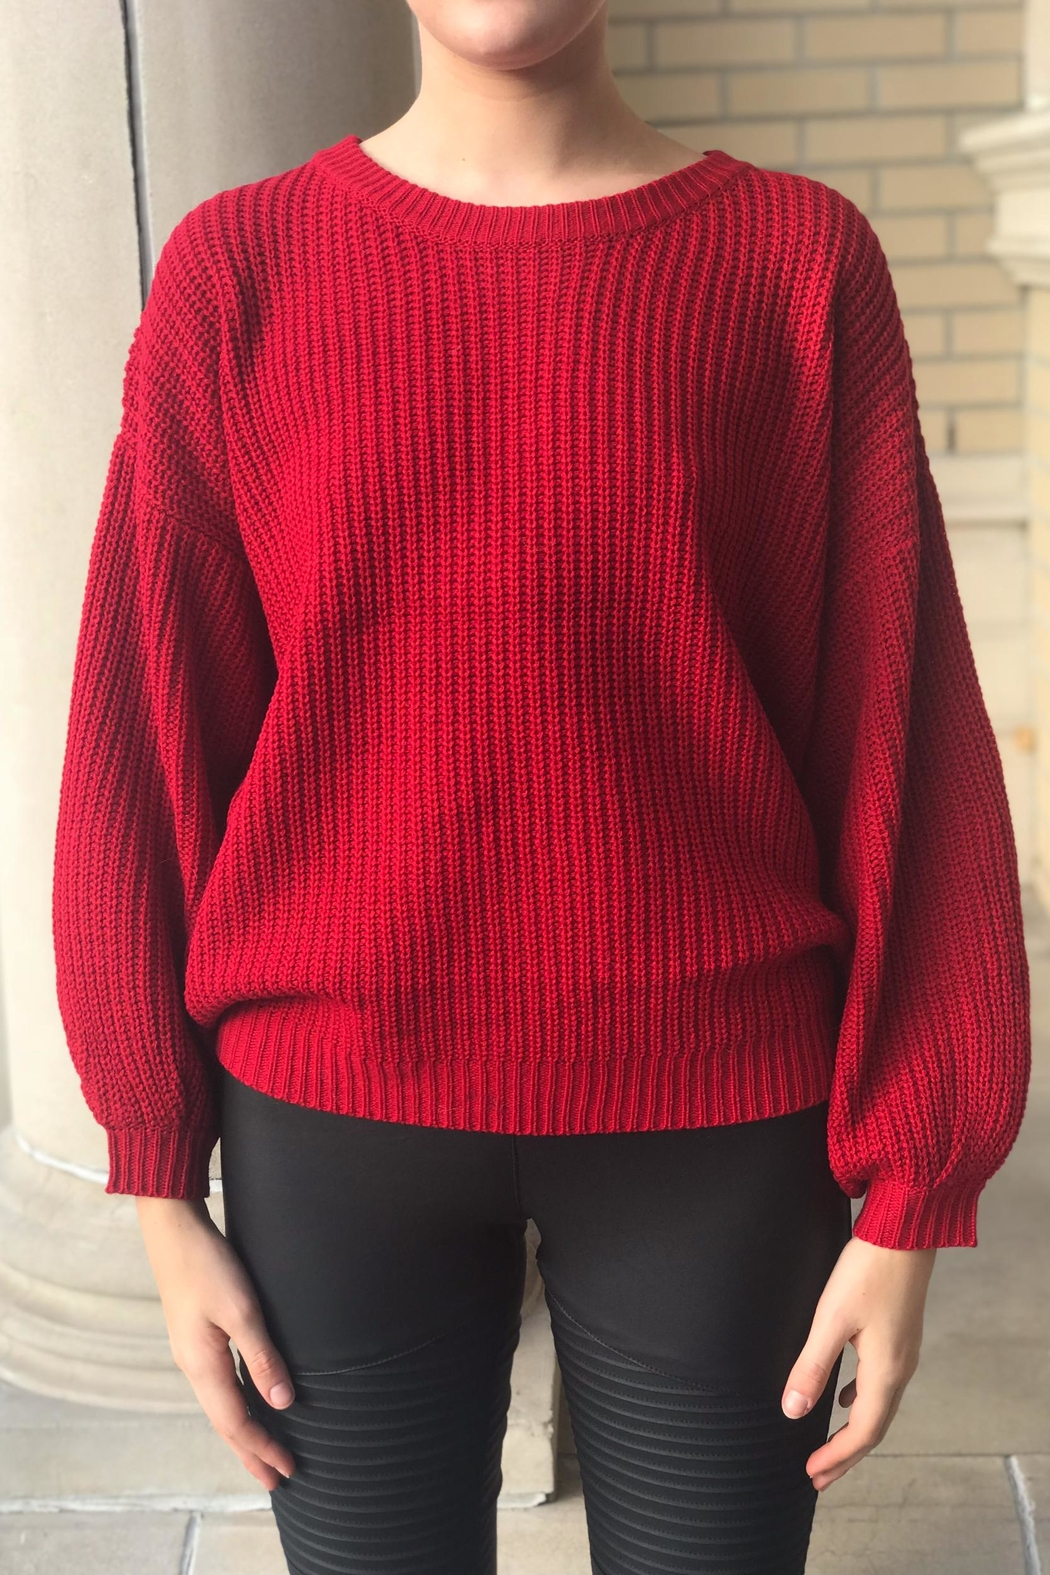 Lumiere Red Knit Sweater from New York City by Dor L'Dor — Shoptiques